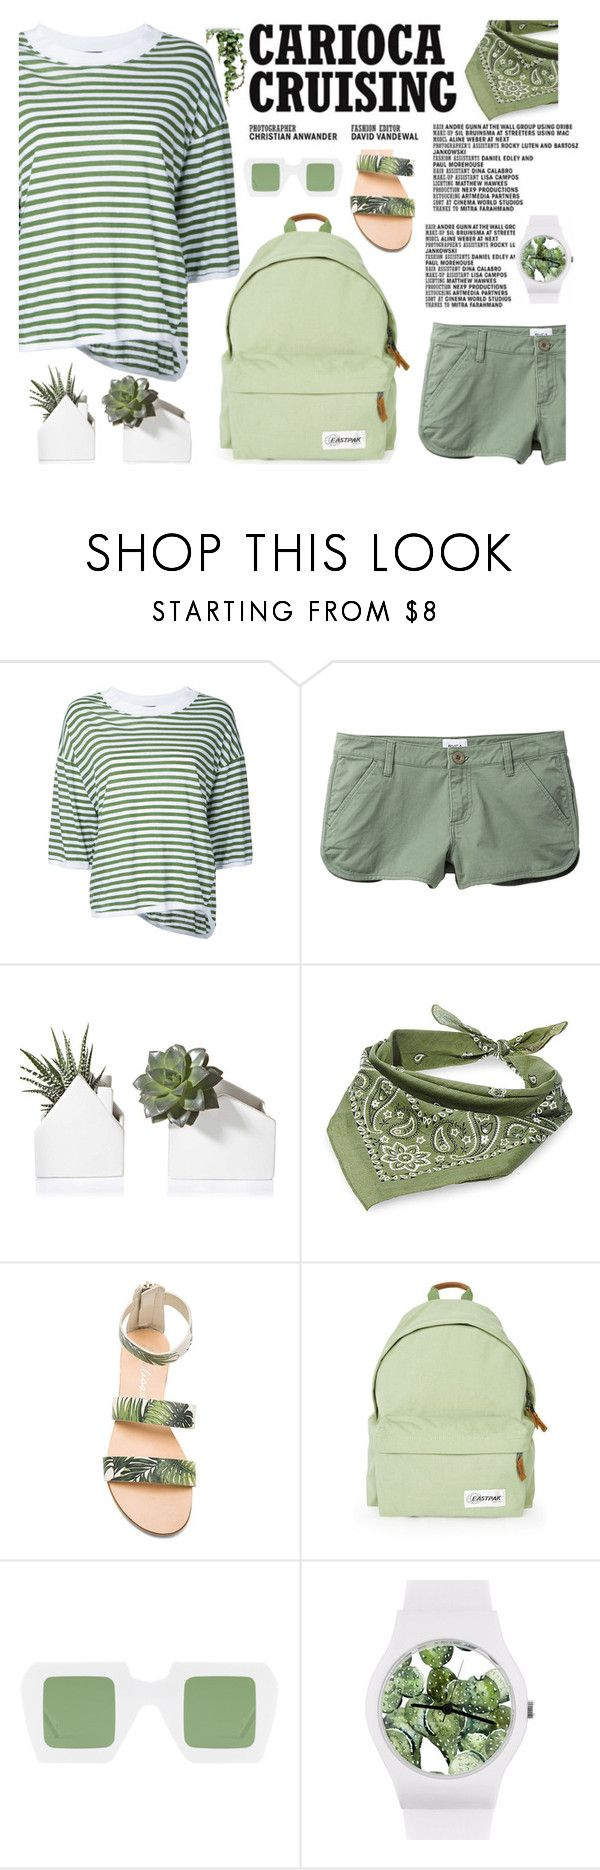 """""""carioca cruising"""" by amelie-poulain-amelie ❤ liked on Polyvore featuring Bassike, RVCA, Steve Madden, Matisse, Eastpak and May28th"""